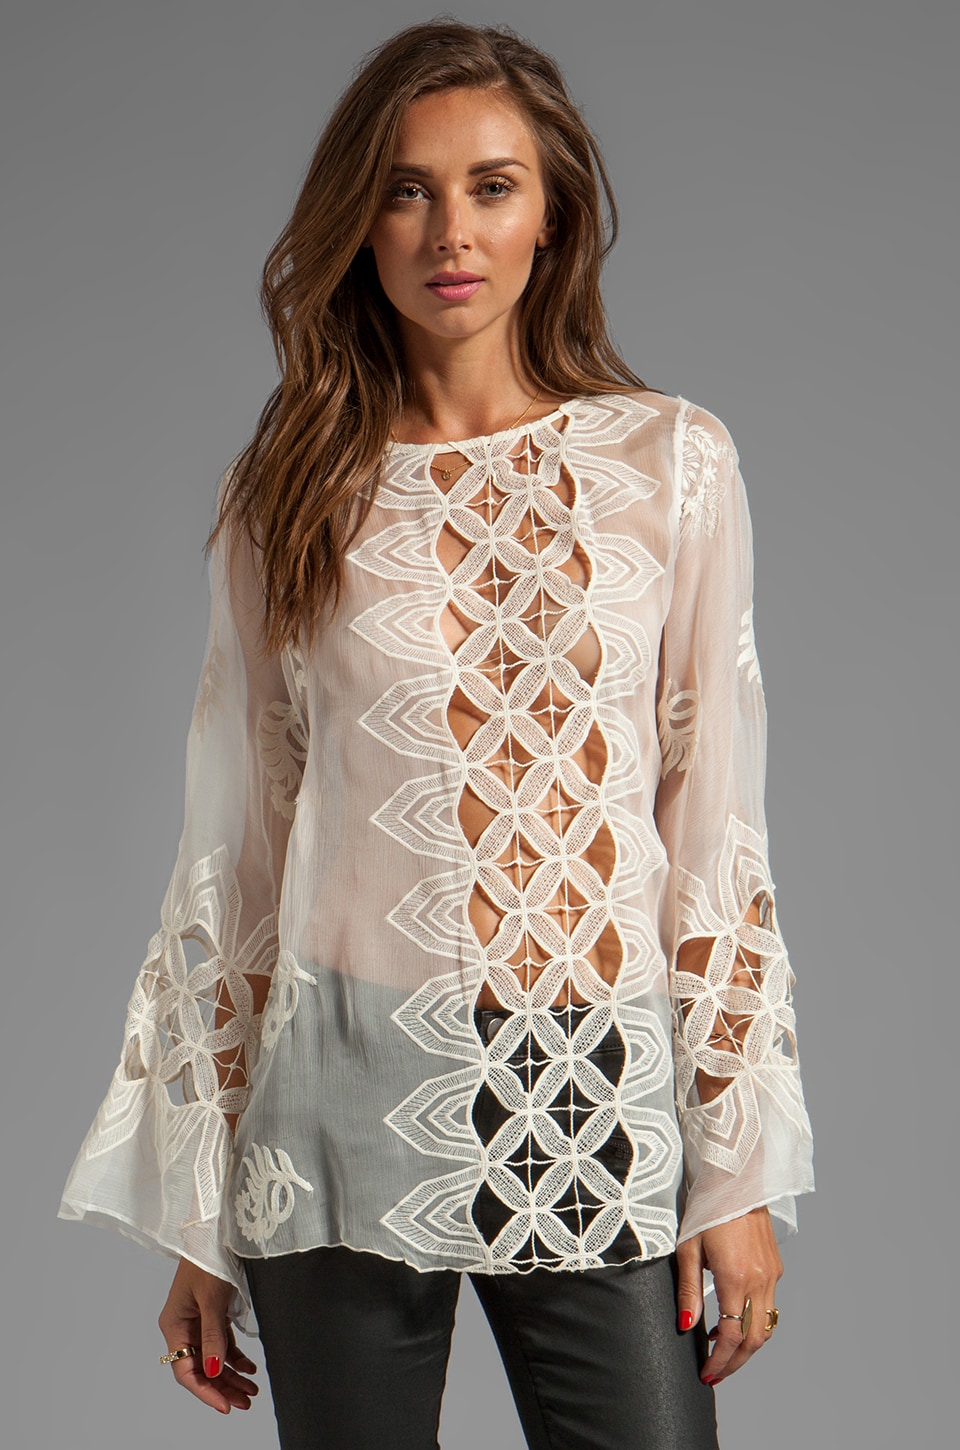 Alexis Aniko Silk Crochet Top in Cream Embroidery